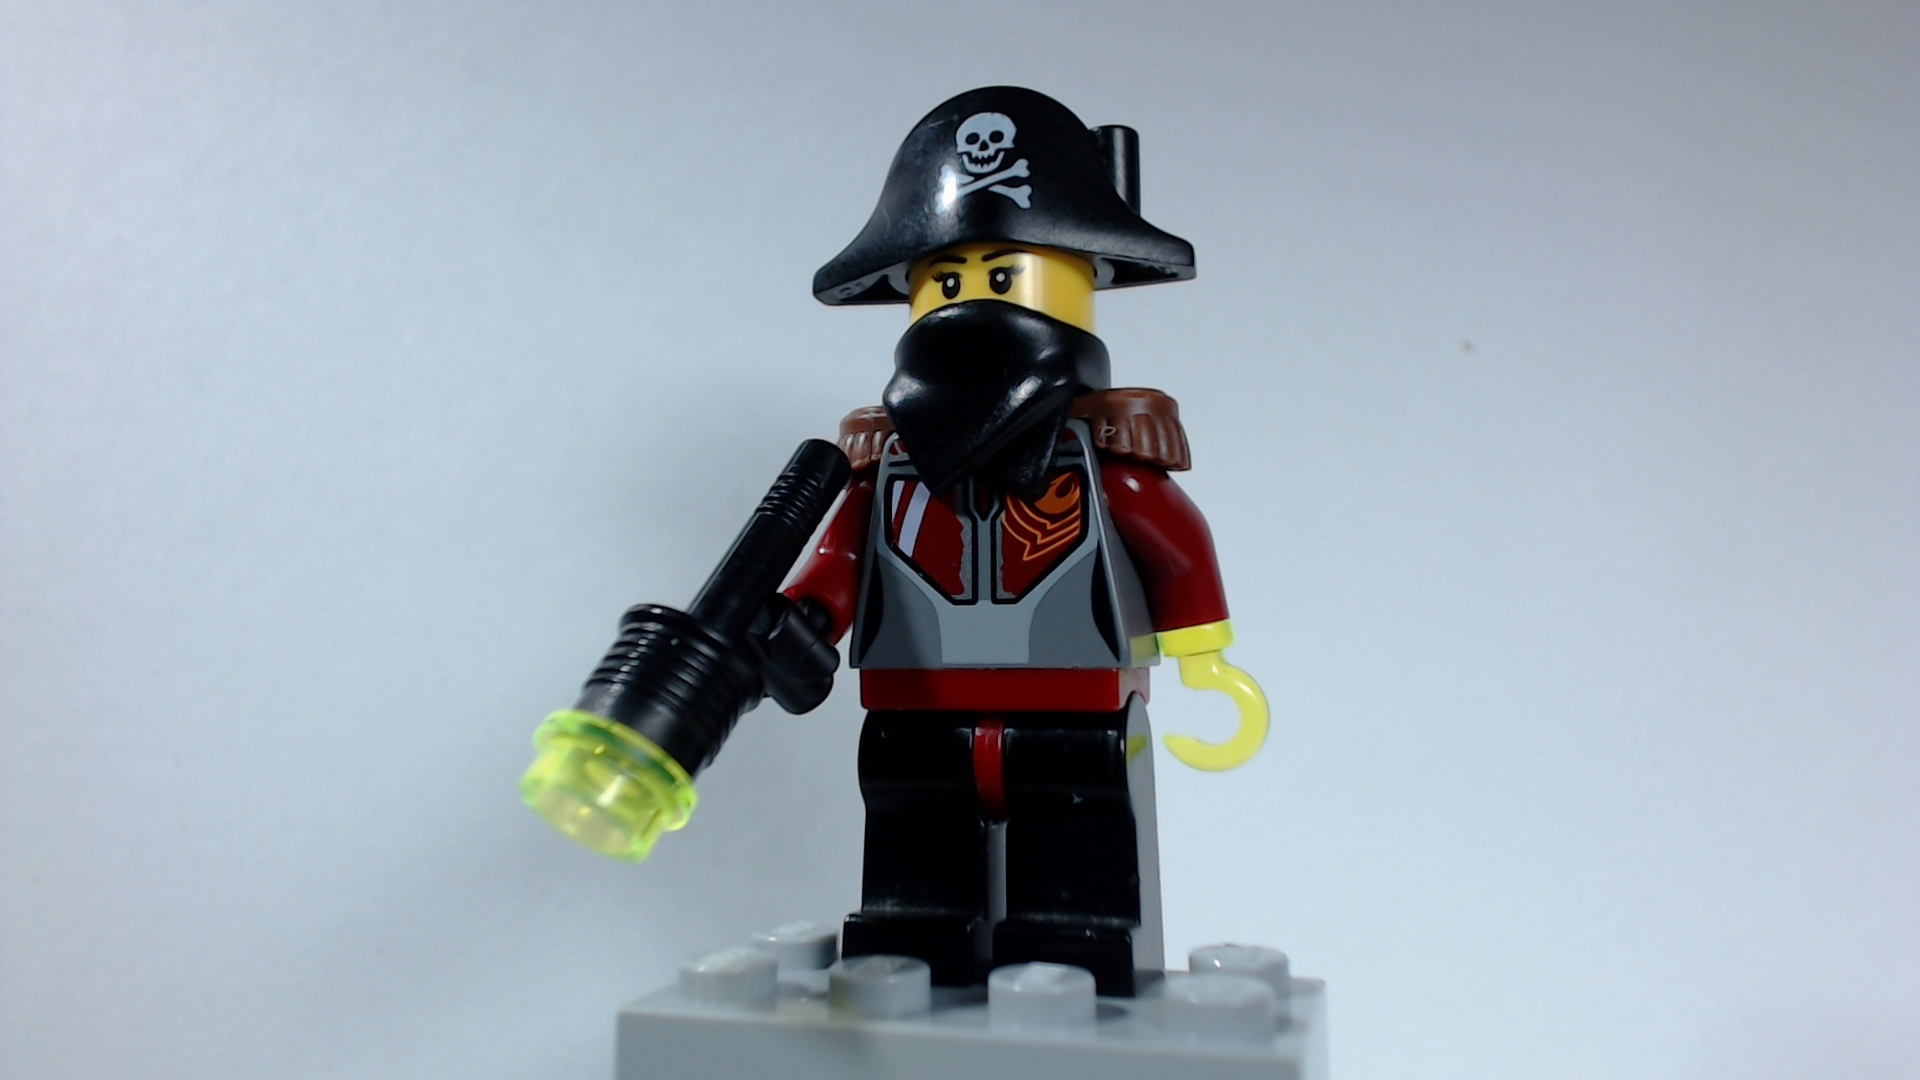 http://bricksafe.com/files/Brickcrazy/Minifigs/2015_11_26_Animation_001_Frame_000001.jpg